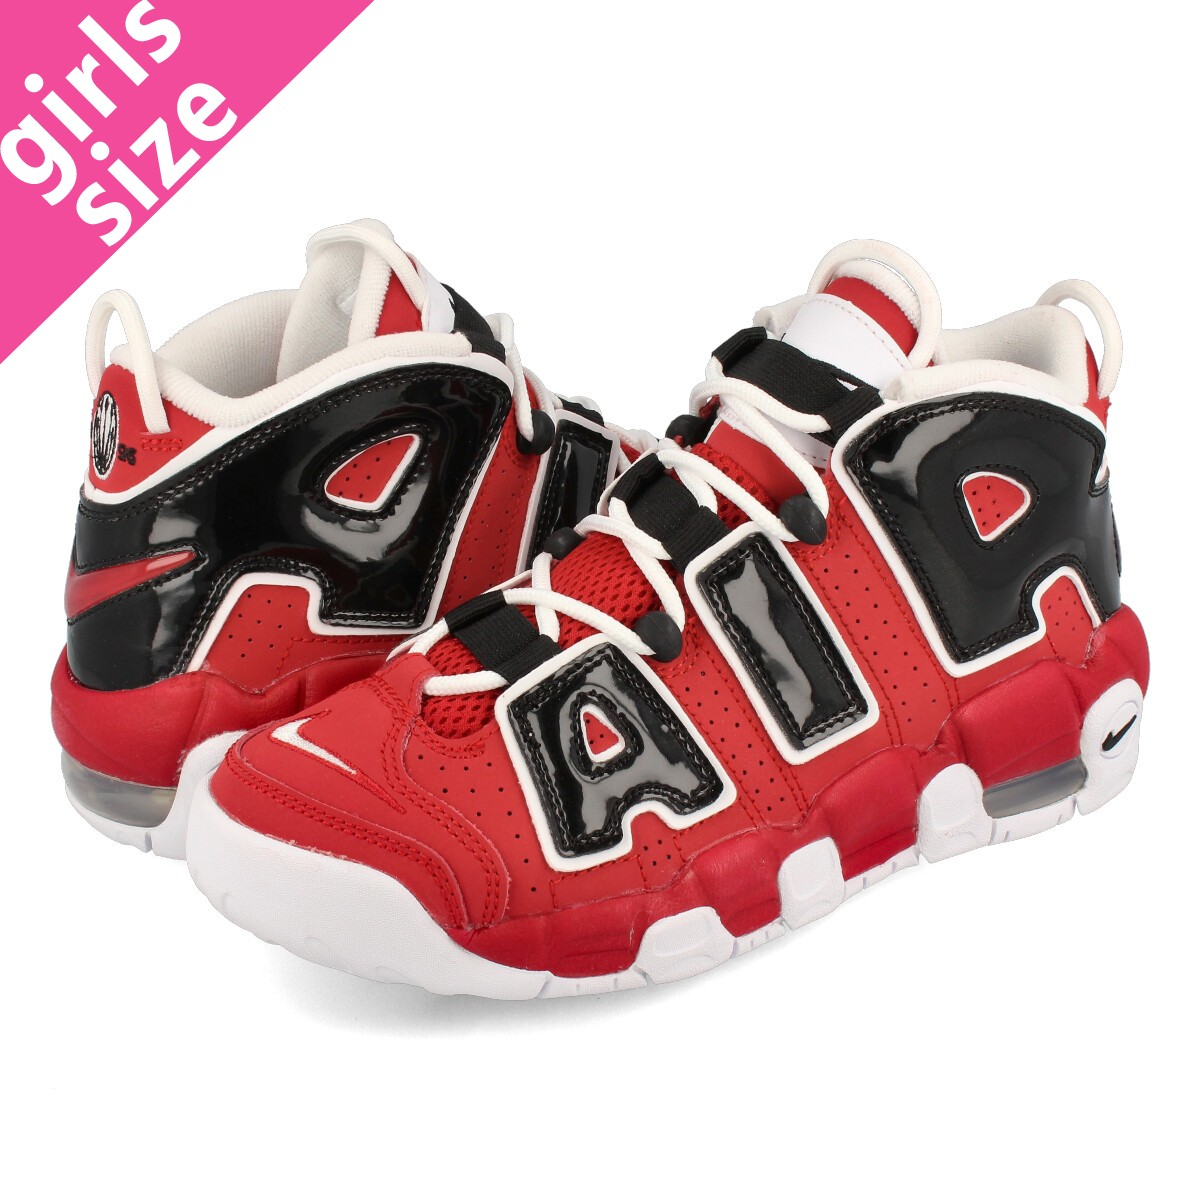 size 40 a7257 5dd72 NIKE AIR MORE UPTEMPO GS Nike more up tempo GS VARSITY RED WHITE BLACK  415,082-600